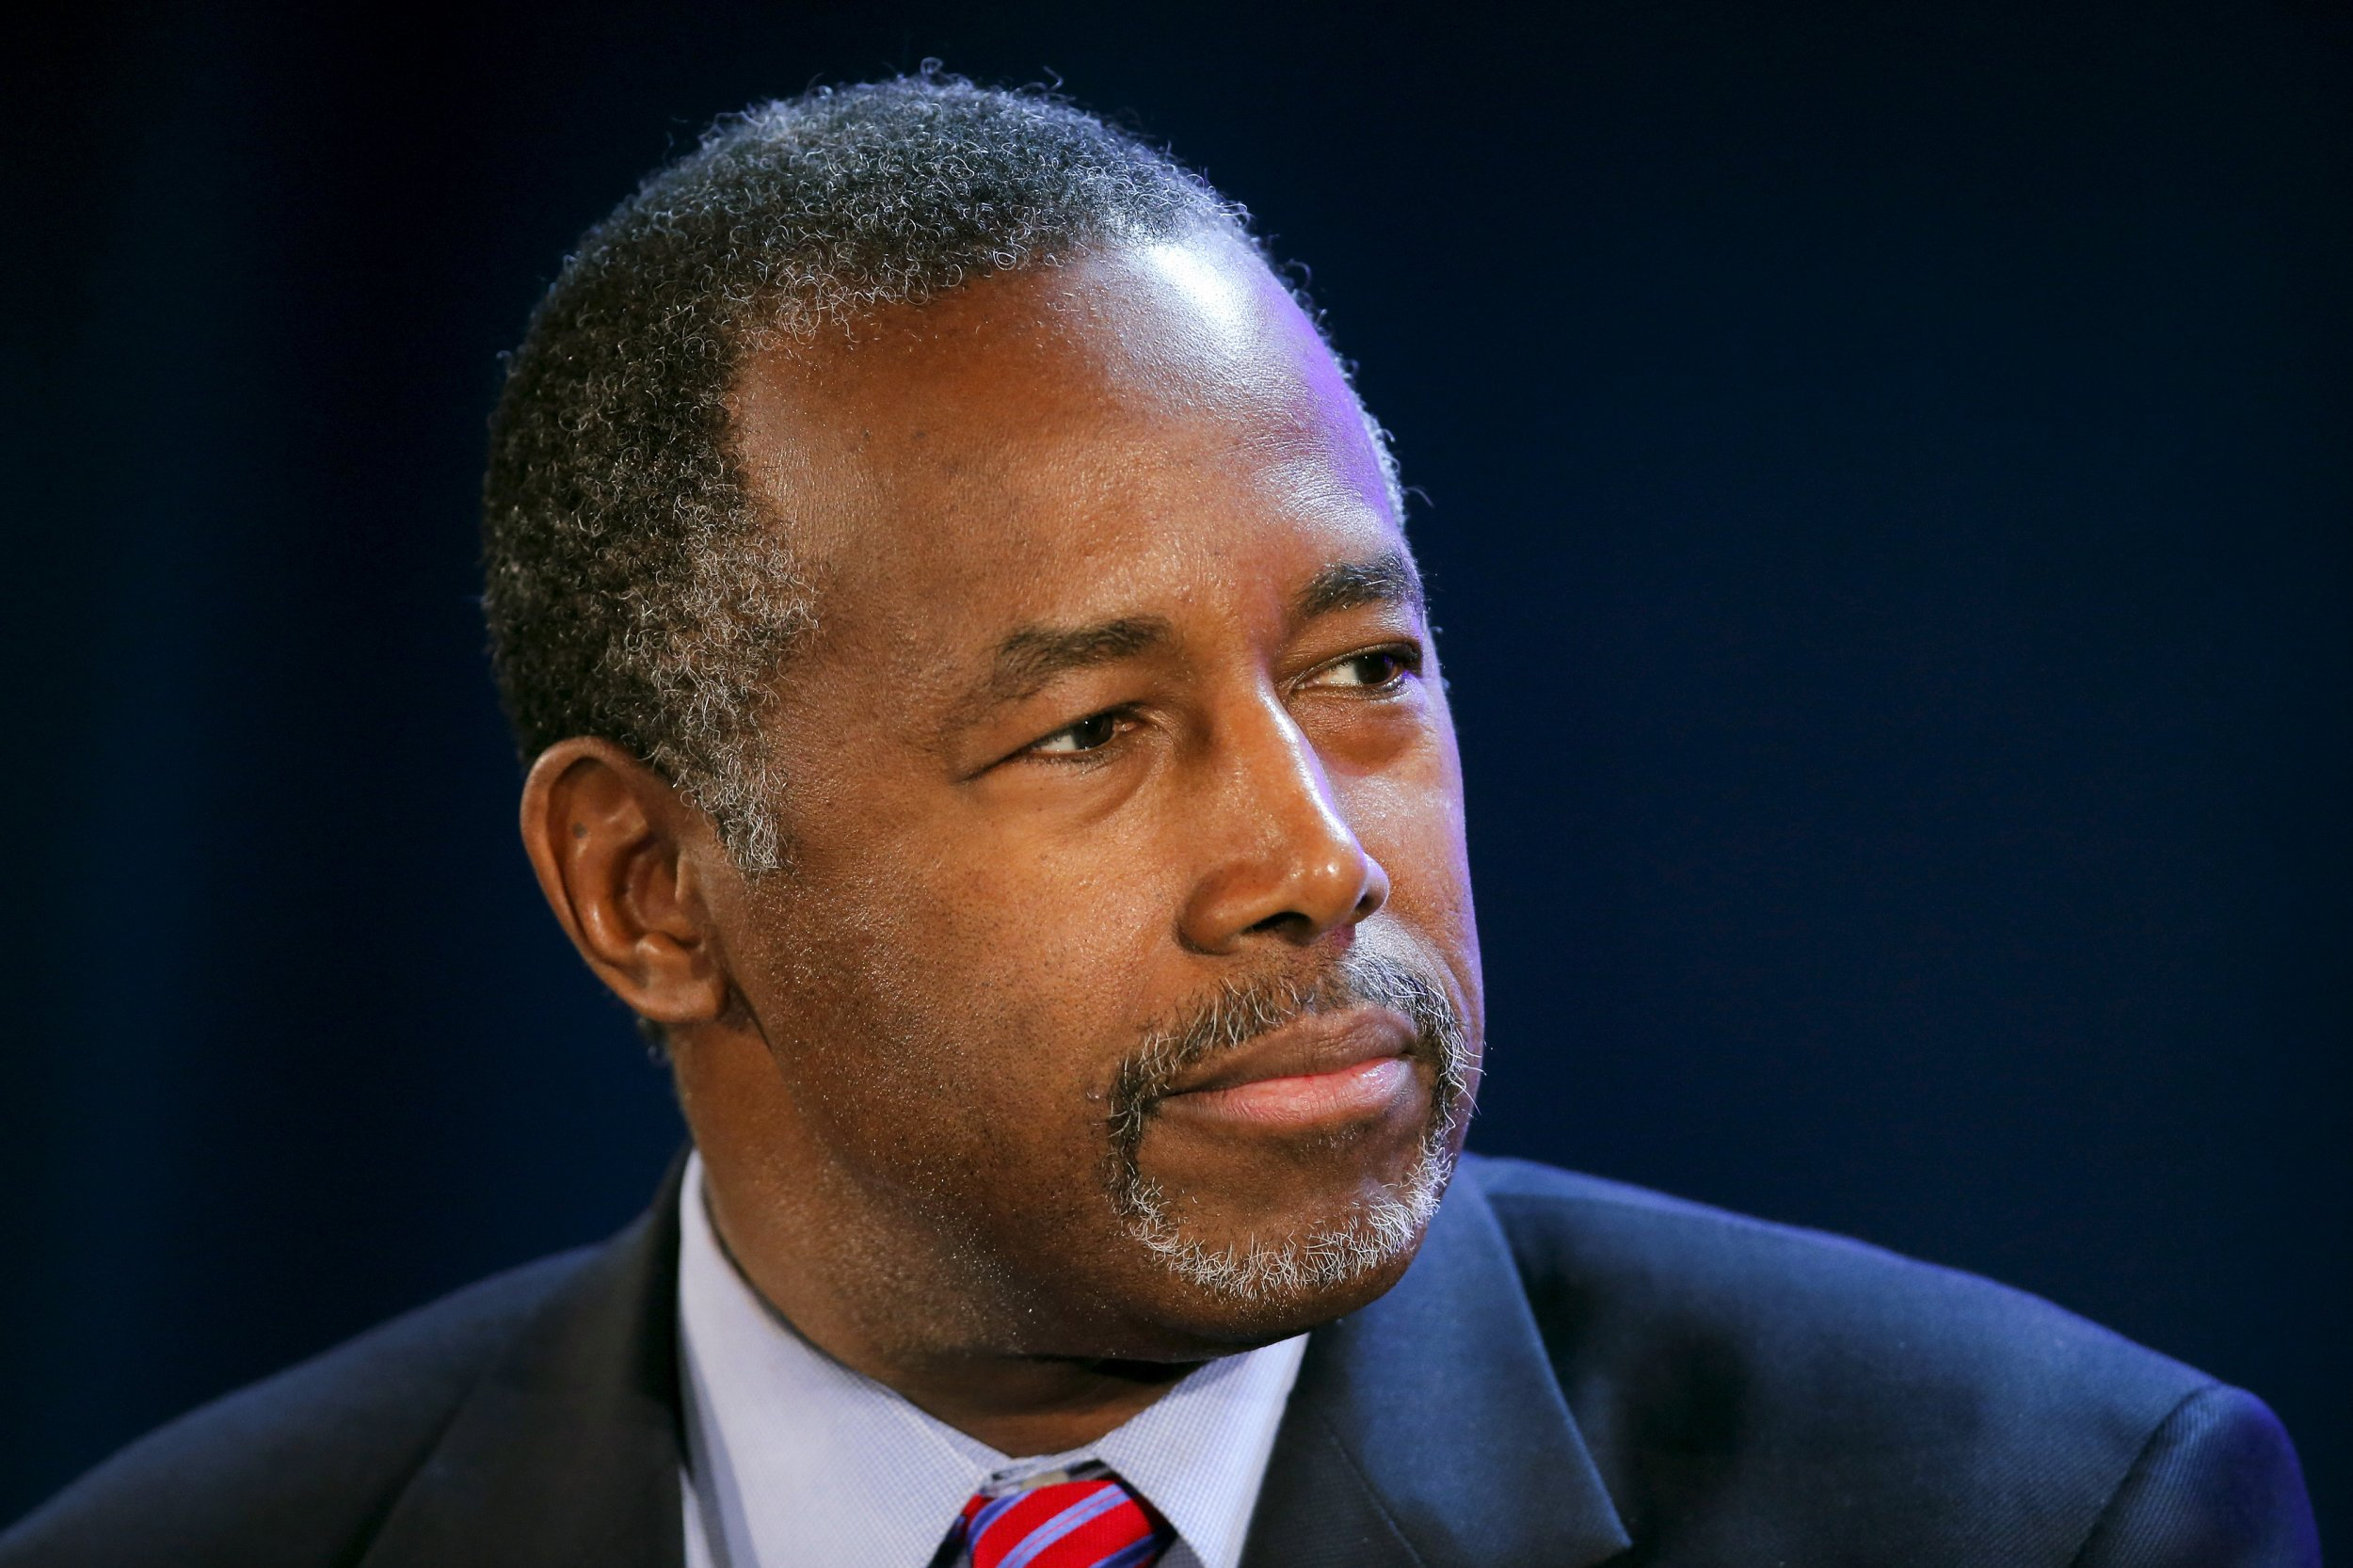 Ben carson not suspending his campaign just going to florida for some